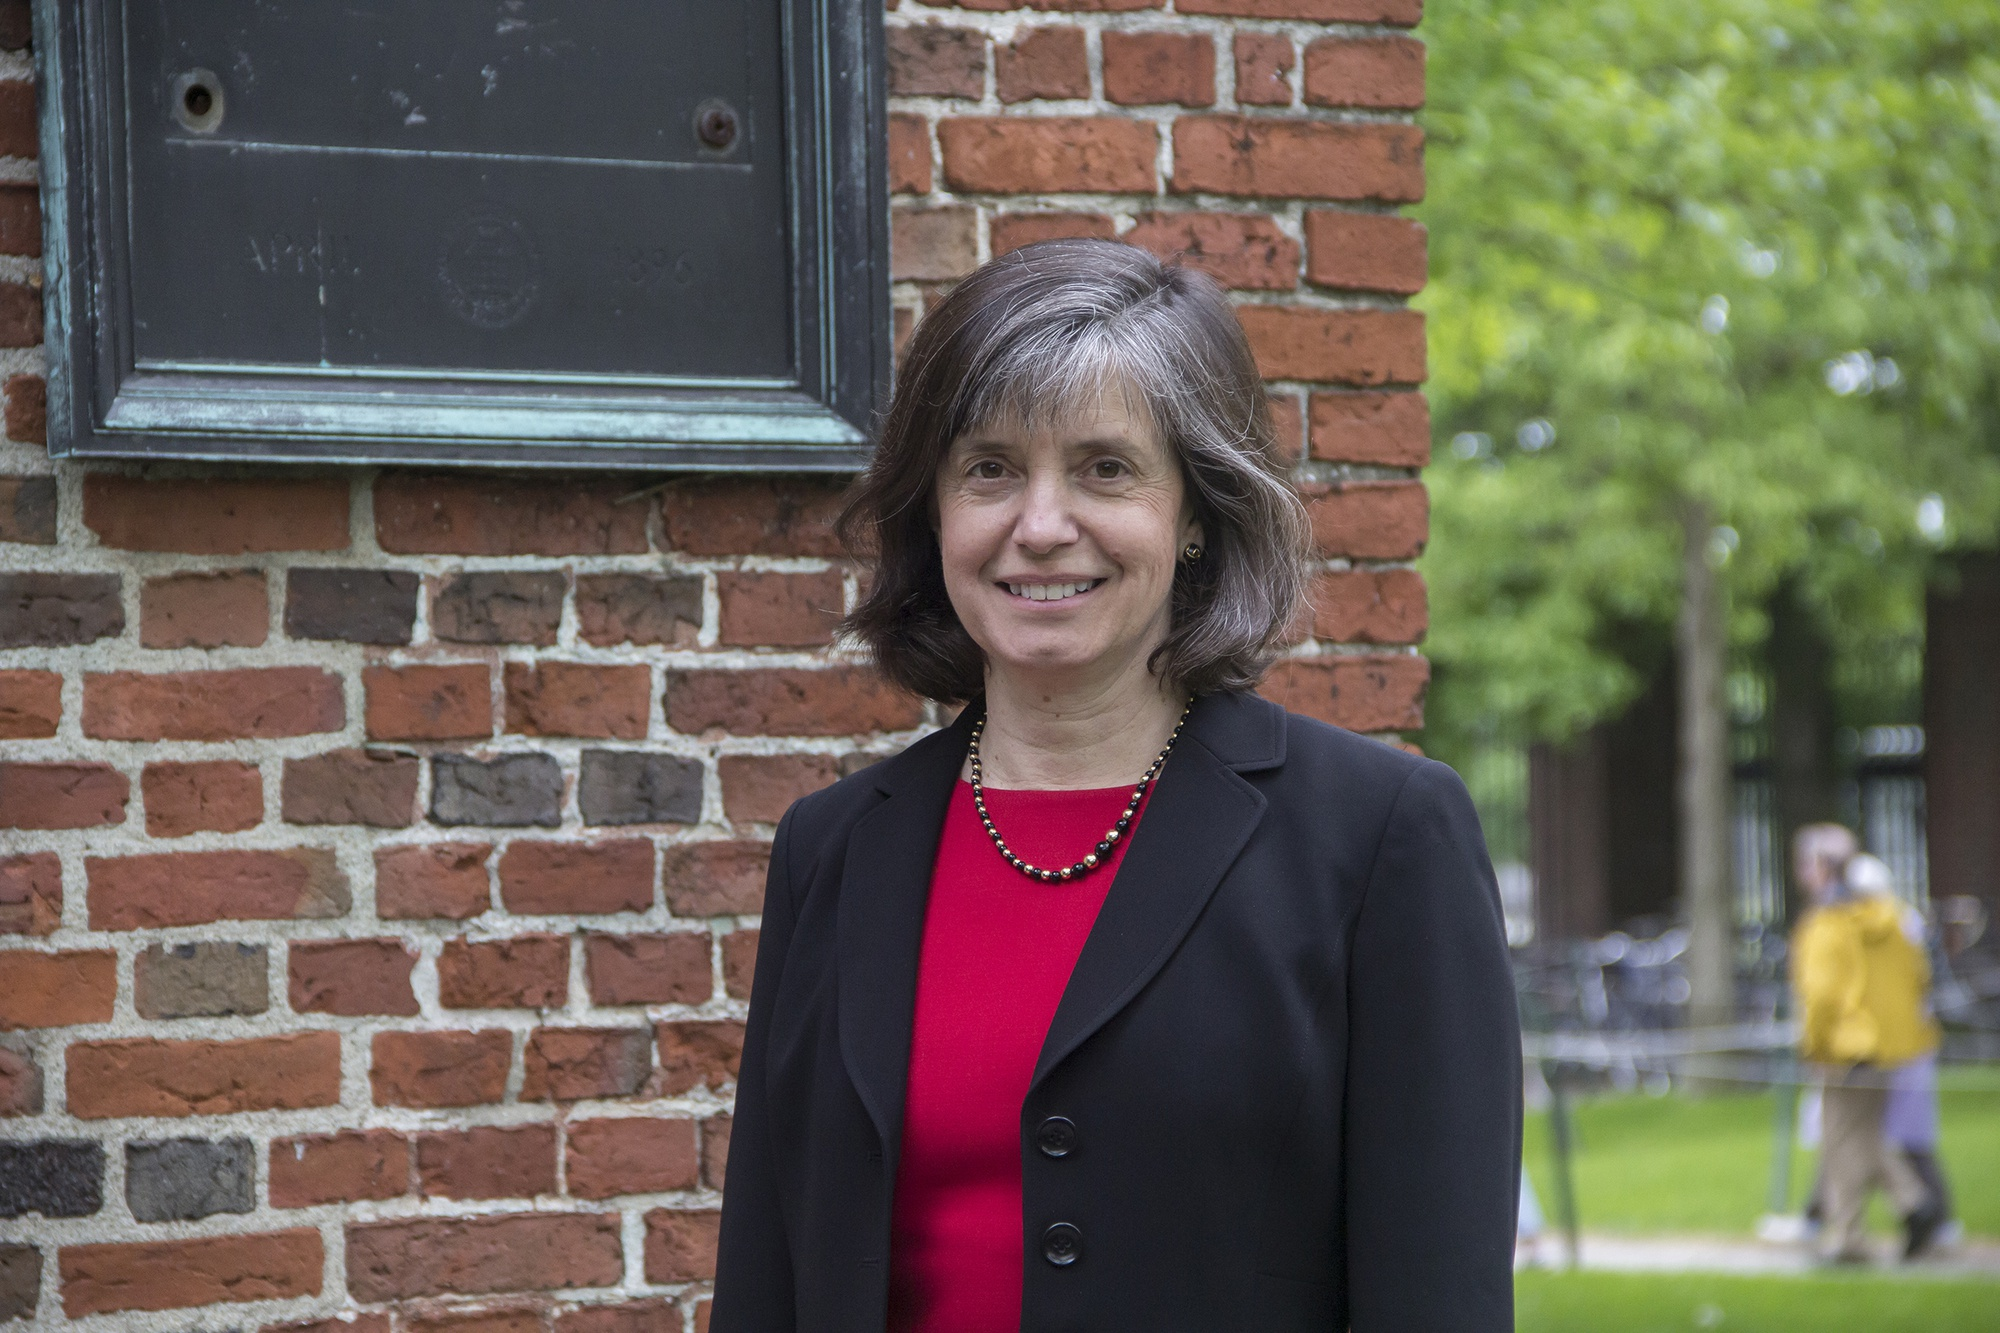 After helping Harvard's endowment recover from a global financial crisis, Jane L. Mendillo left her position as Harvard Management Company President and CEO at the end of 2014.